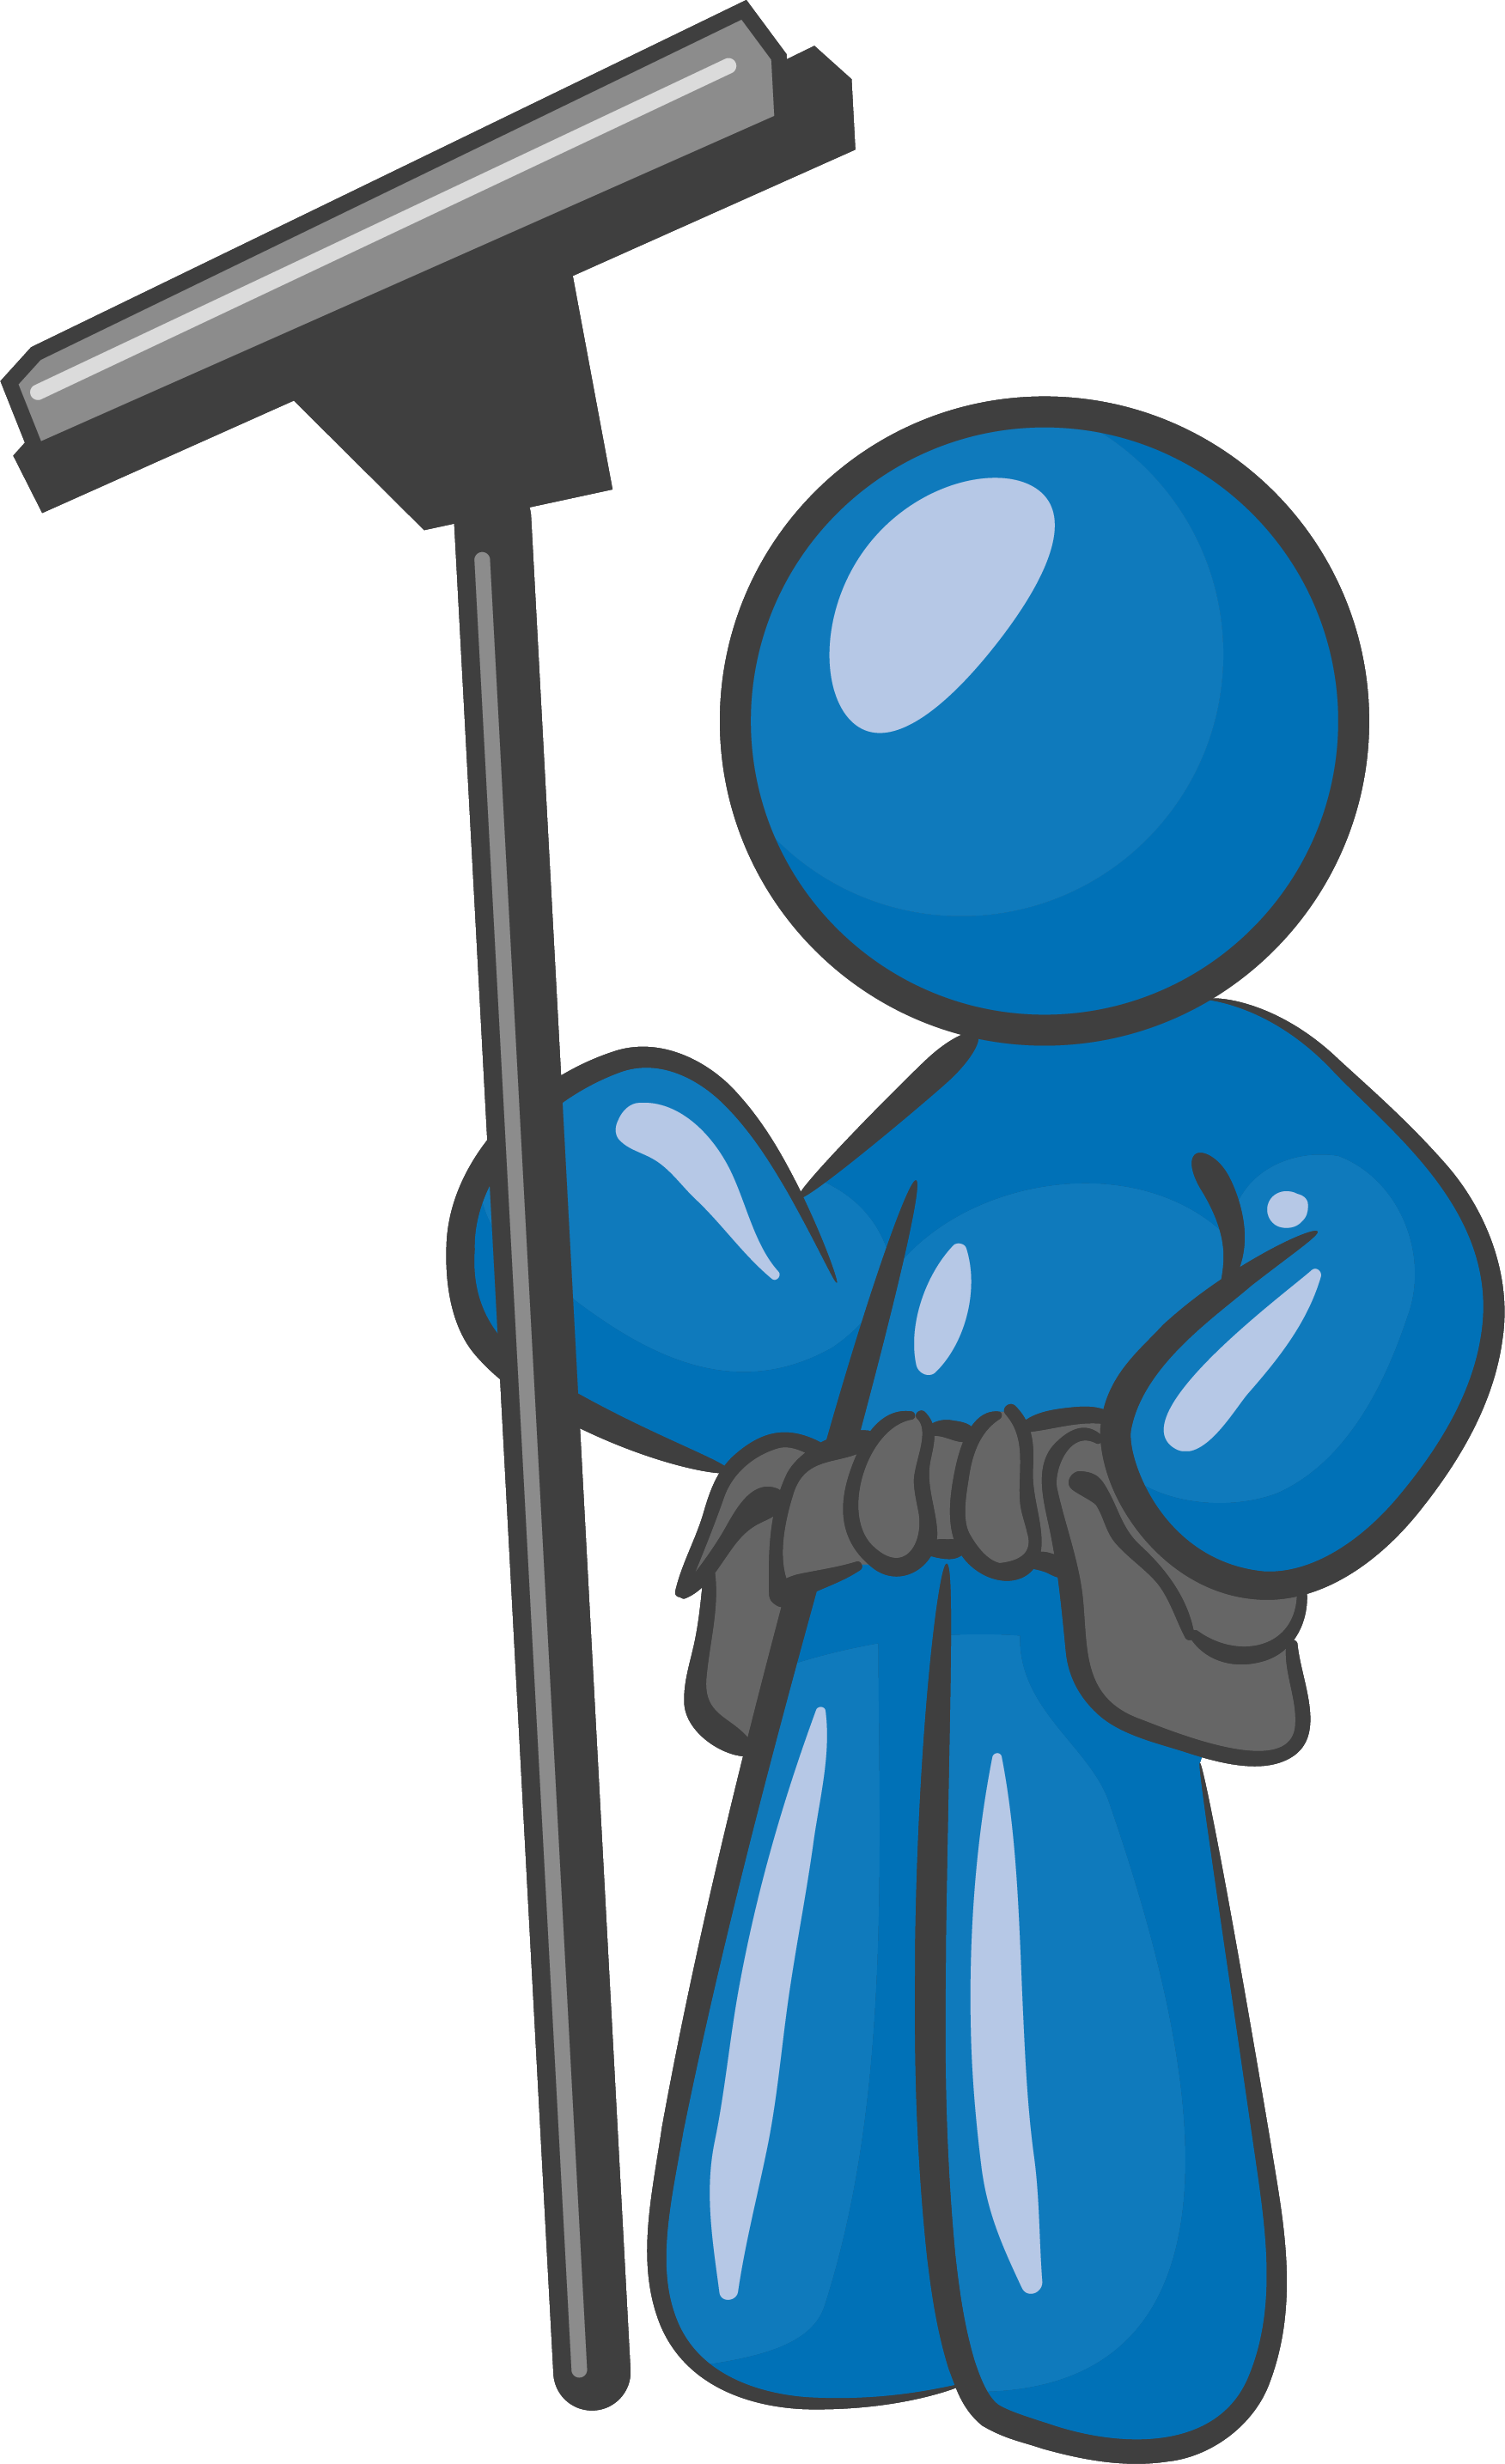 Cleaner clipart window washer. Free cleaning cliparts download